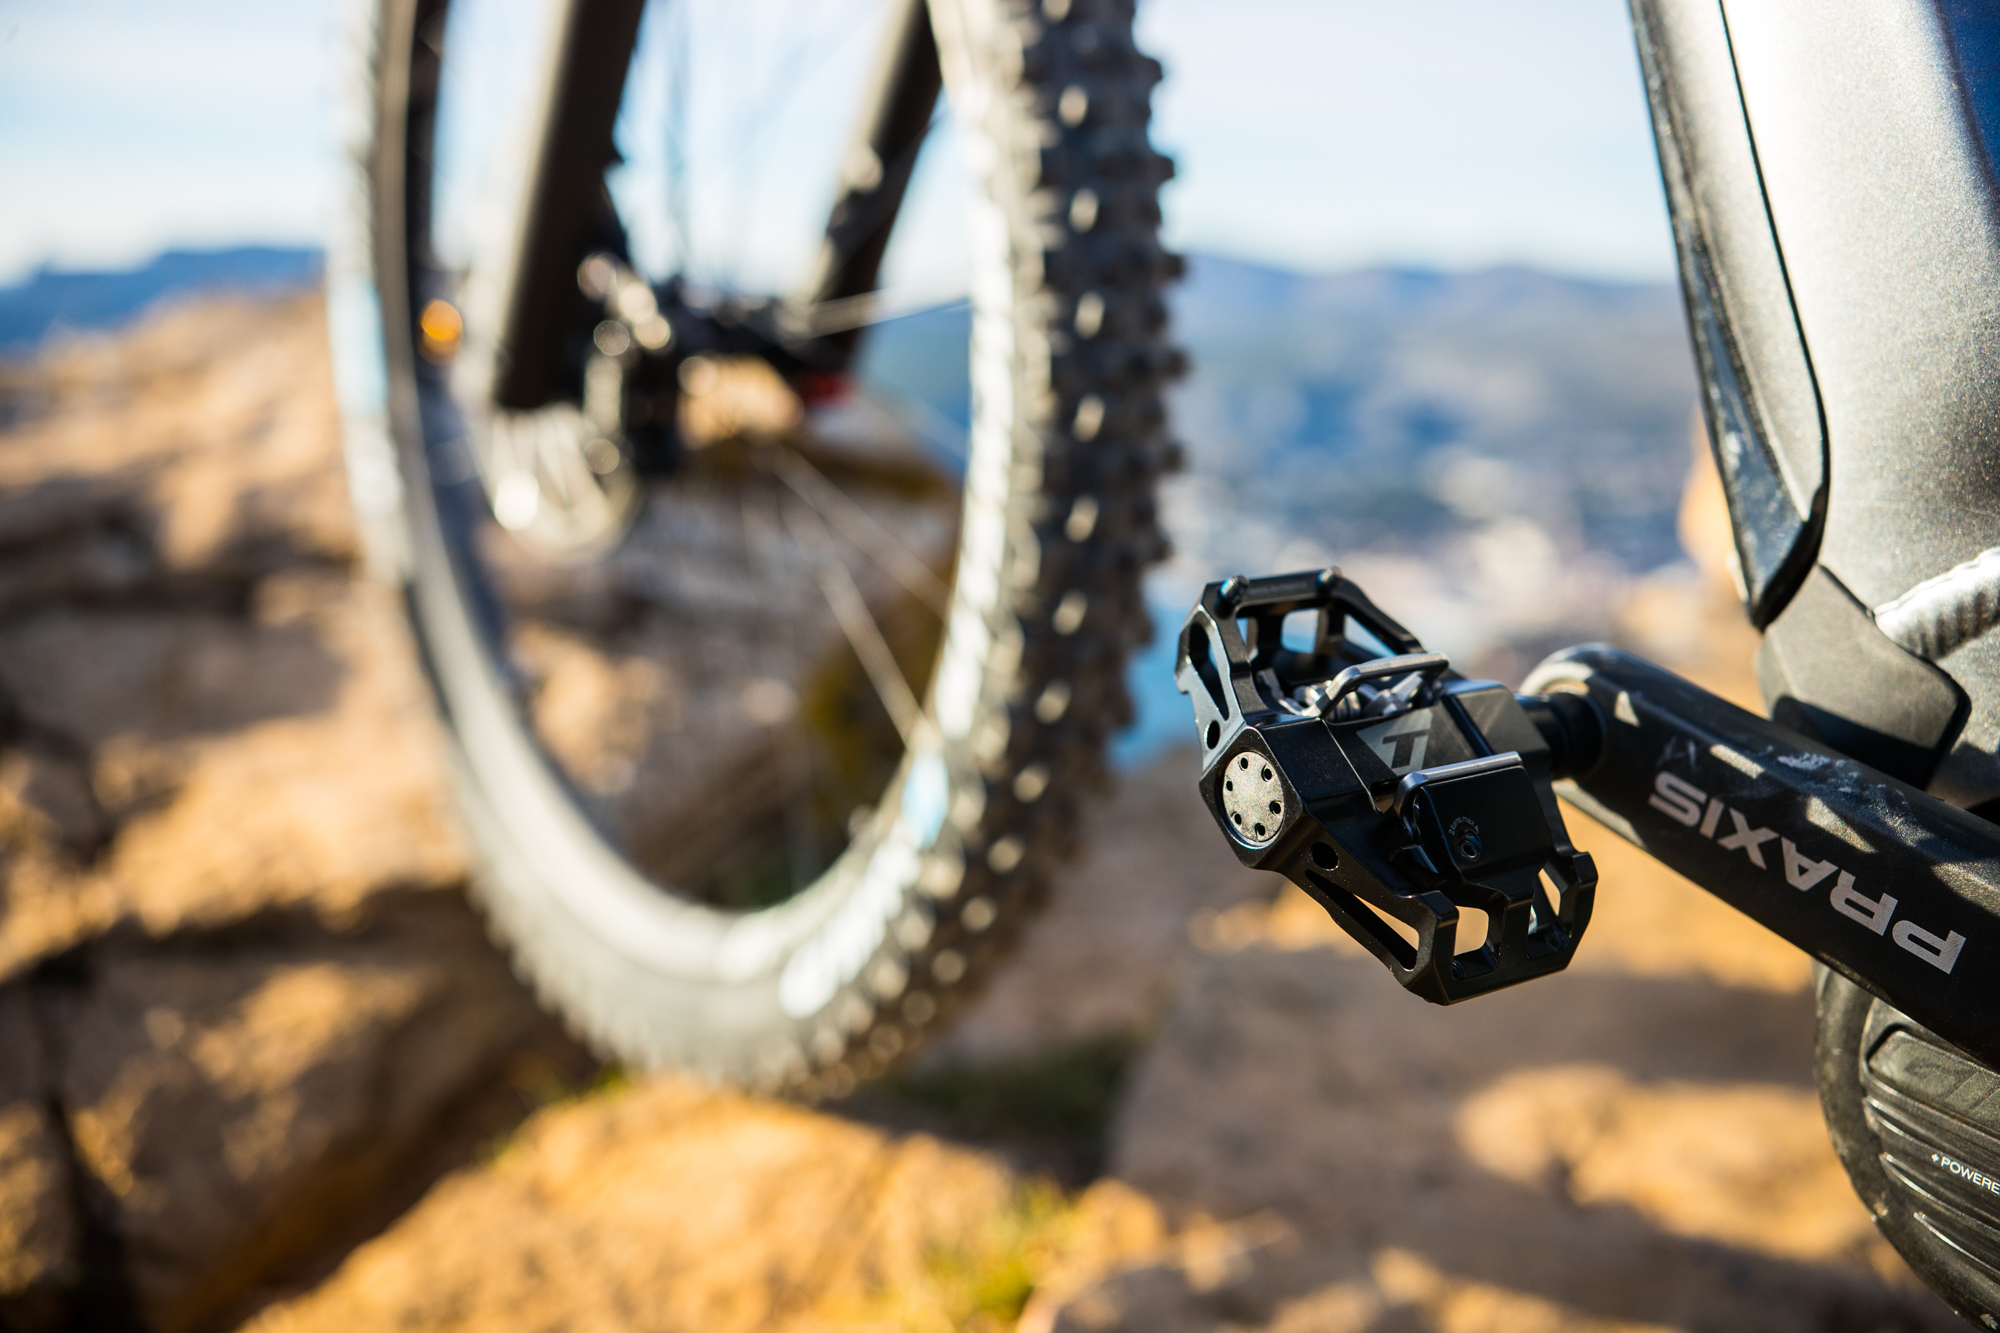 435d036c3 Lower cost Time Speciale 8 pedal released- Mtbr.com